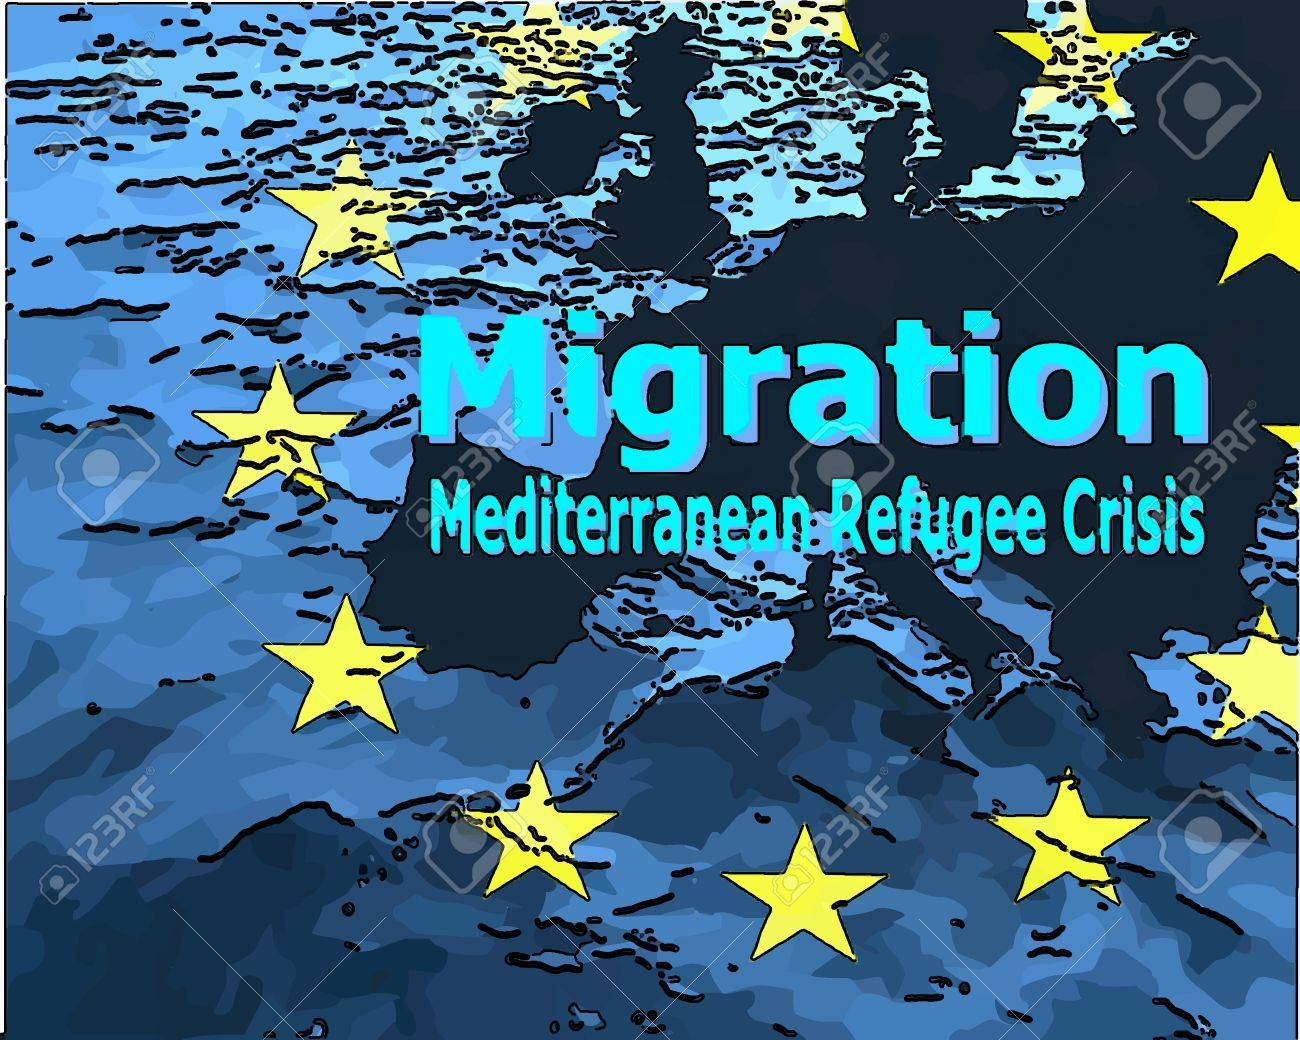 Migration to Europe Refugee Crisis in the Mediterranean The map of Europe with the ring of stars surrounded by water with the word quotmigrationquot quotMediterranean Refugee Crisisquot. - 40649829